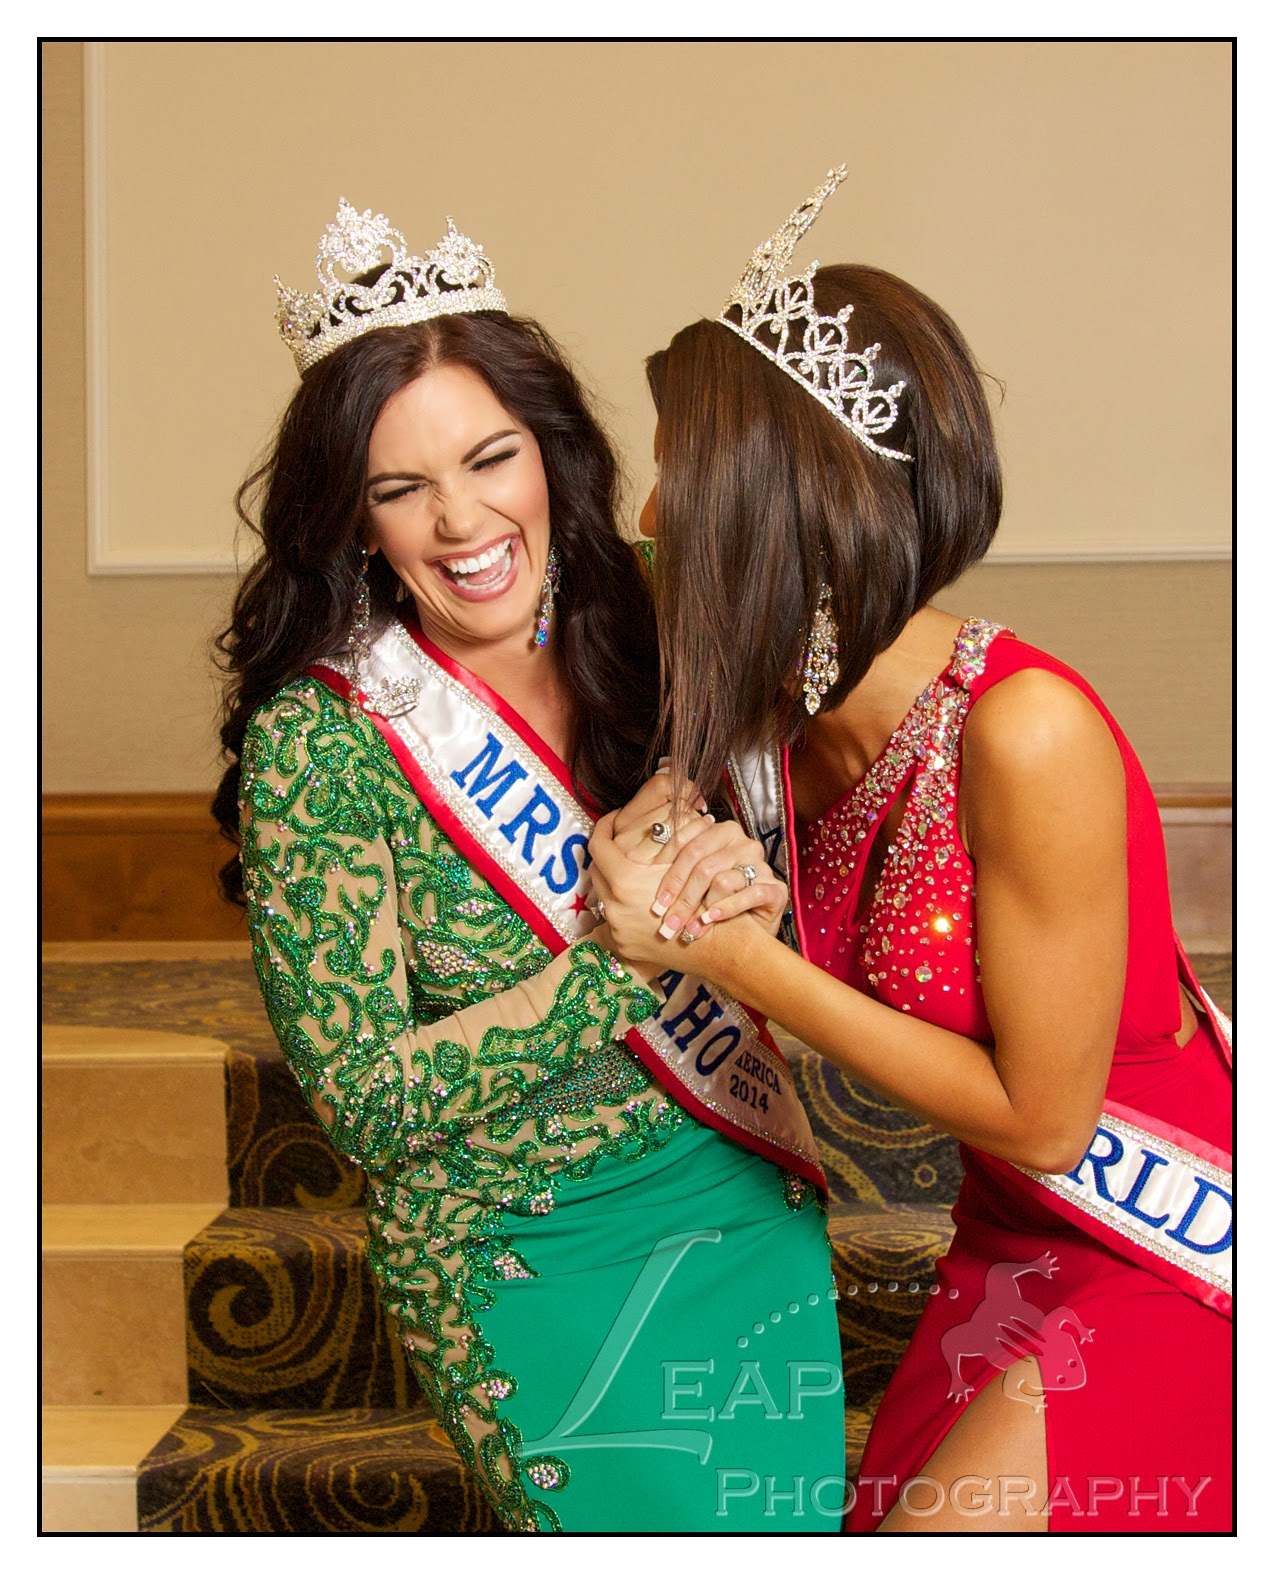 Mrs. Idaho & Mrs. World 2014 laughing